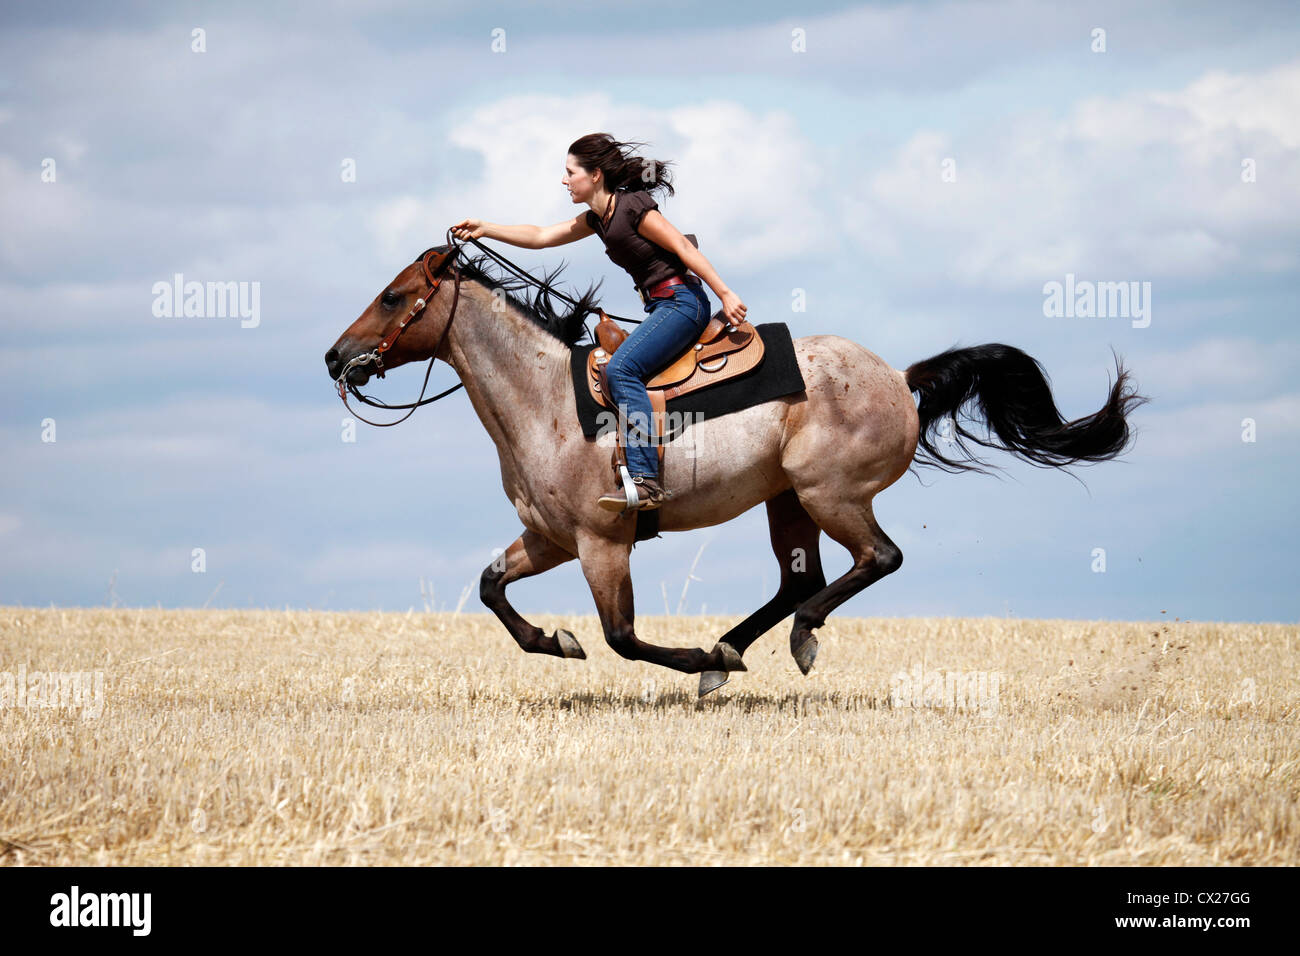 Western Horse High Resolution Stock Photography And Images Alamy